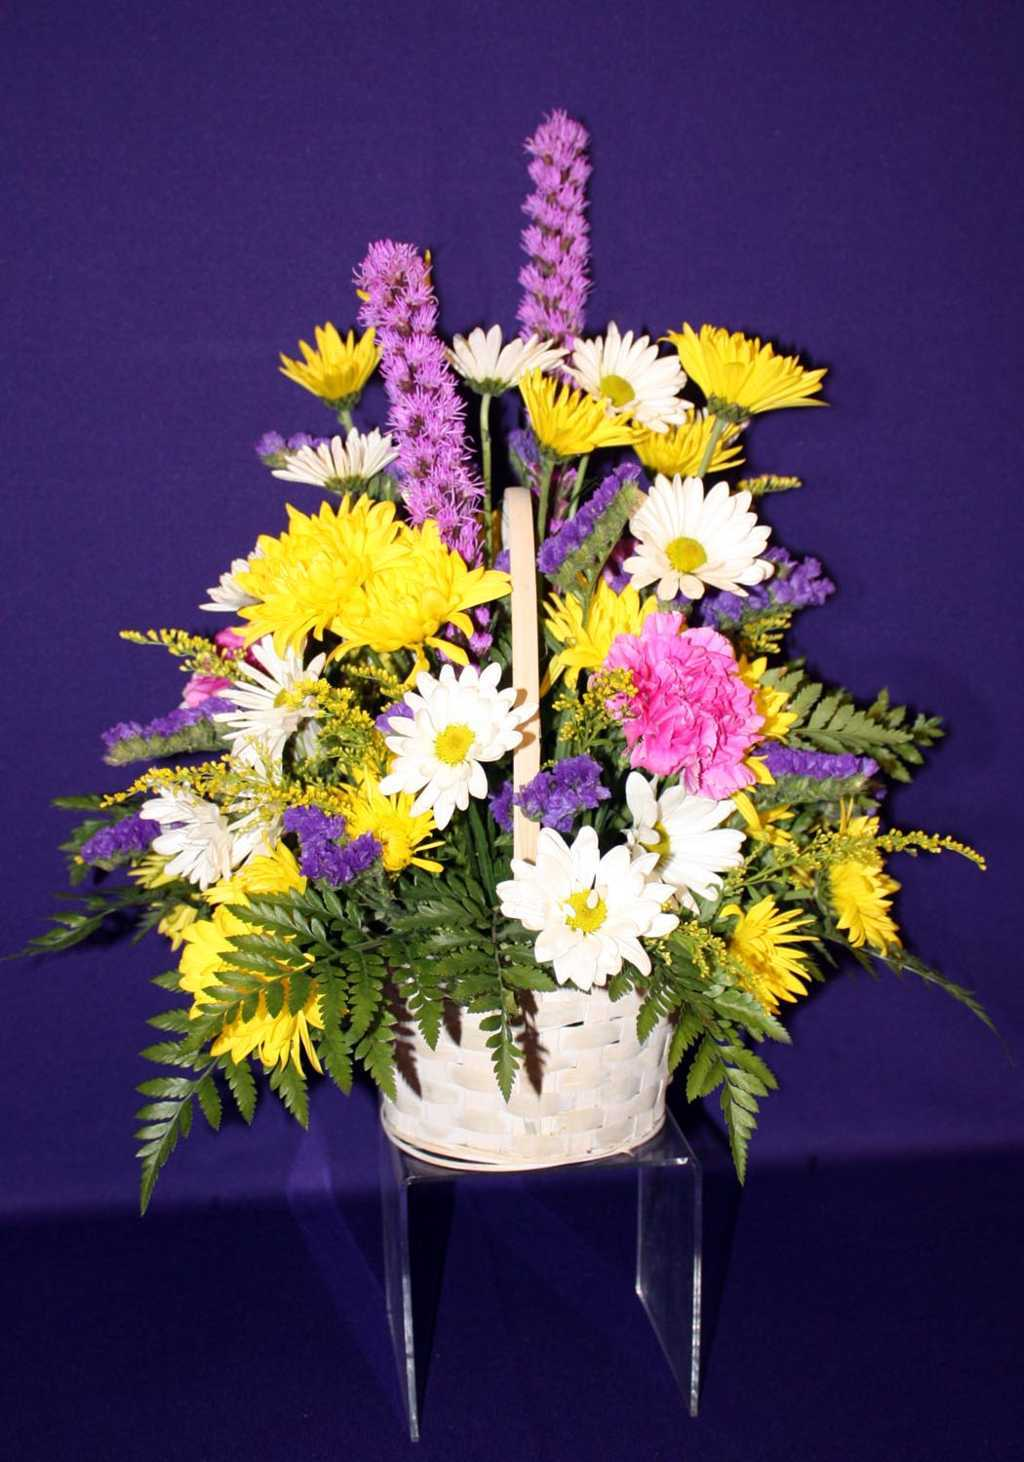 Yellow mums and white daises in a basket from Mon General Hospital Gift Shop